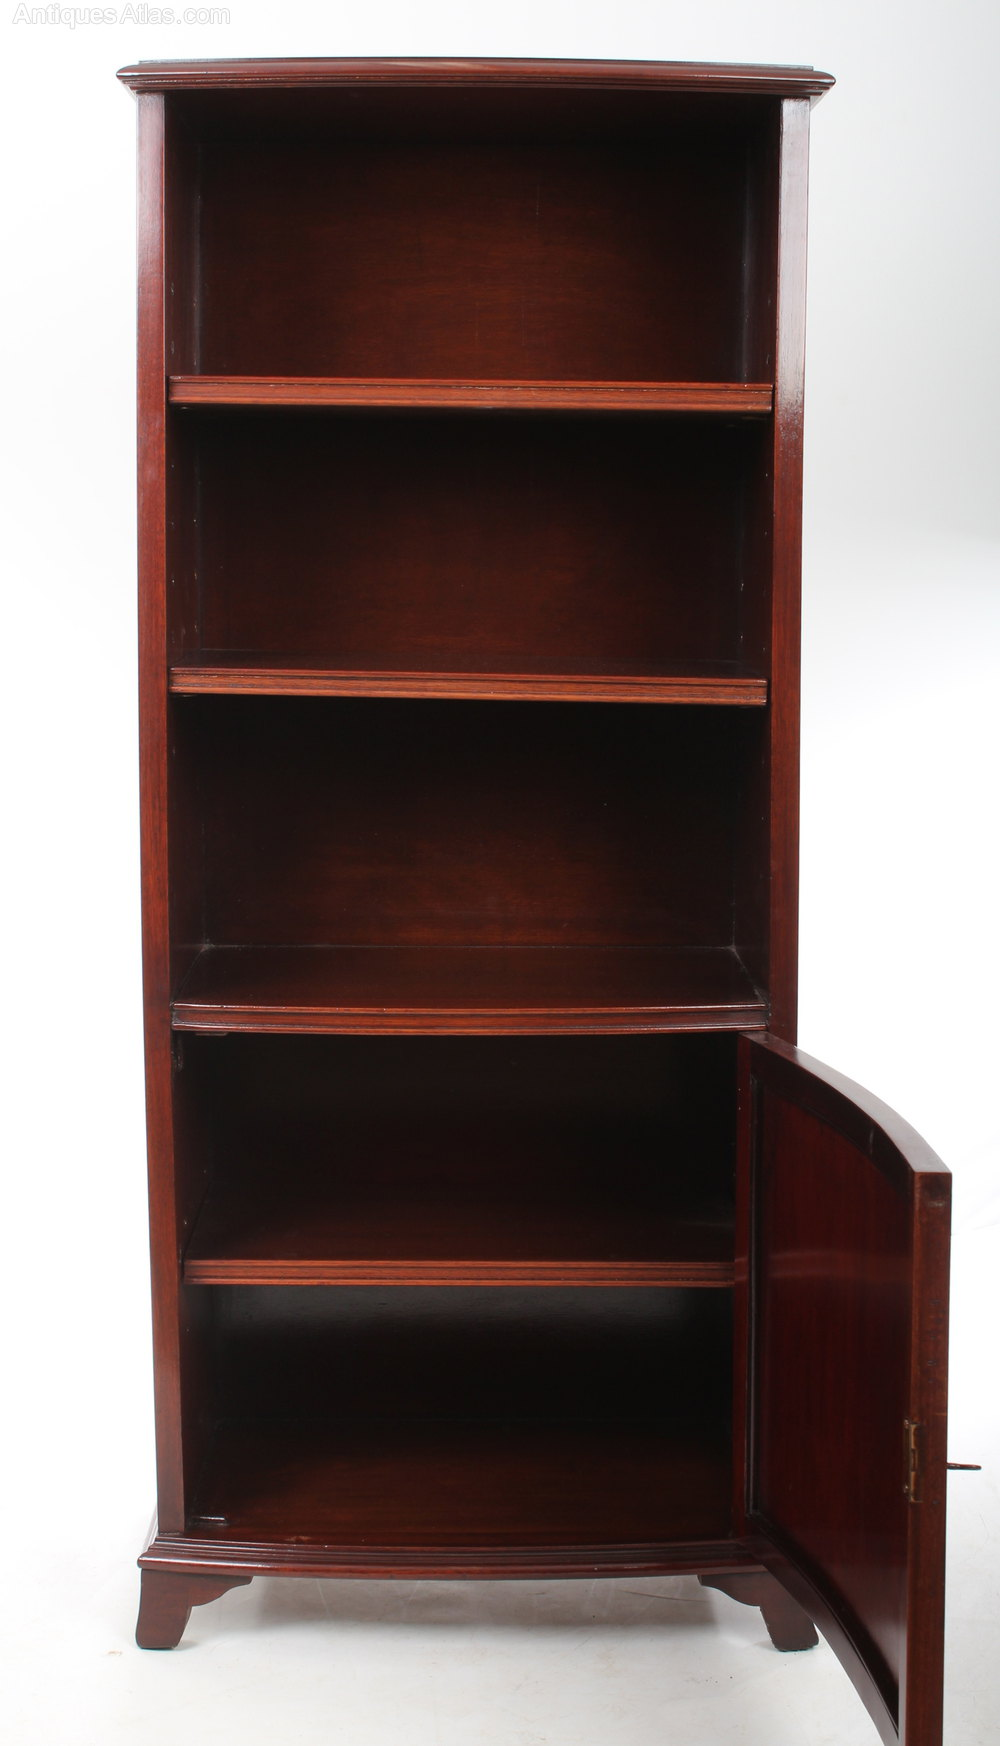 Slim Mahogany Bow Fronted Open Bookcase - Antiques Atlas